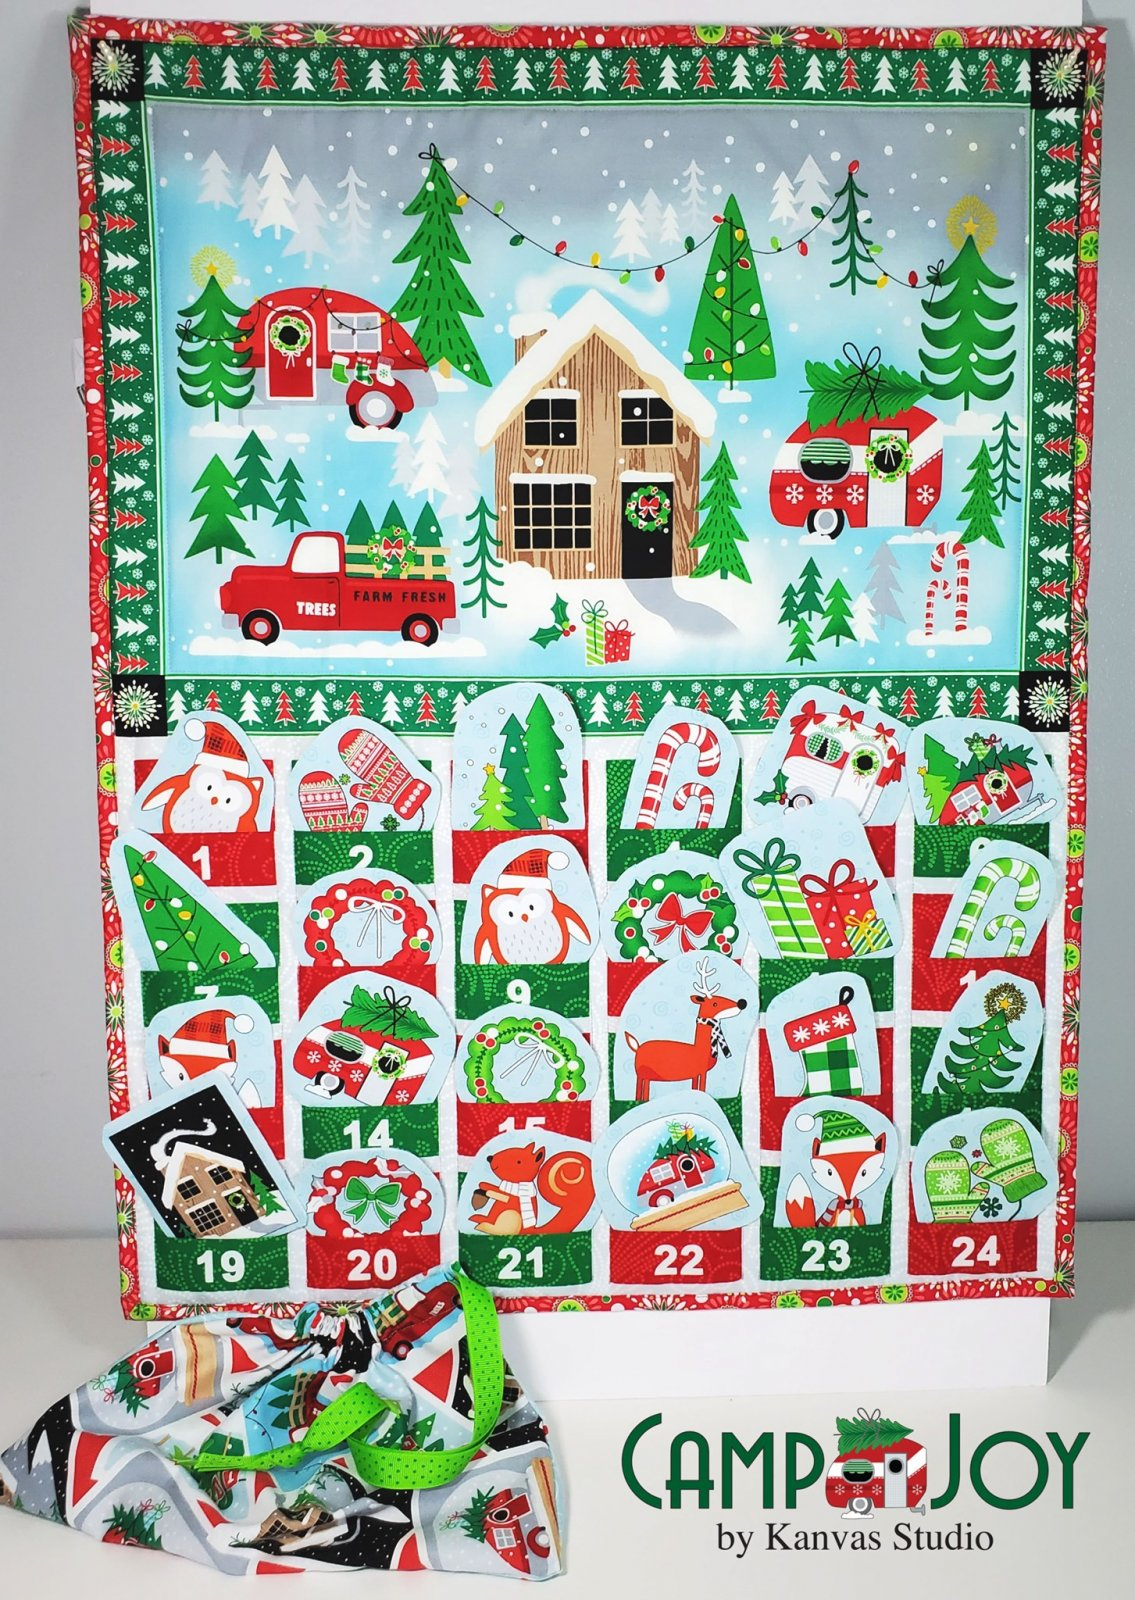 Multi Camp Joy Advent Panel